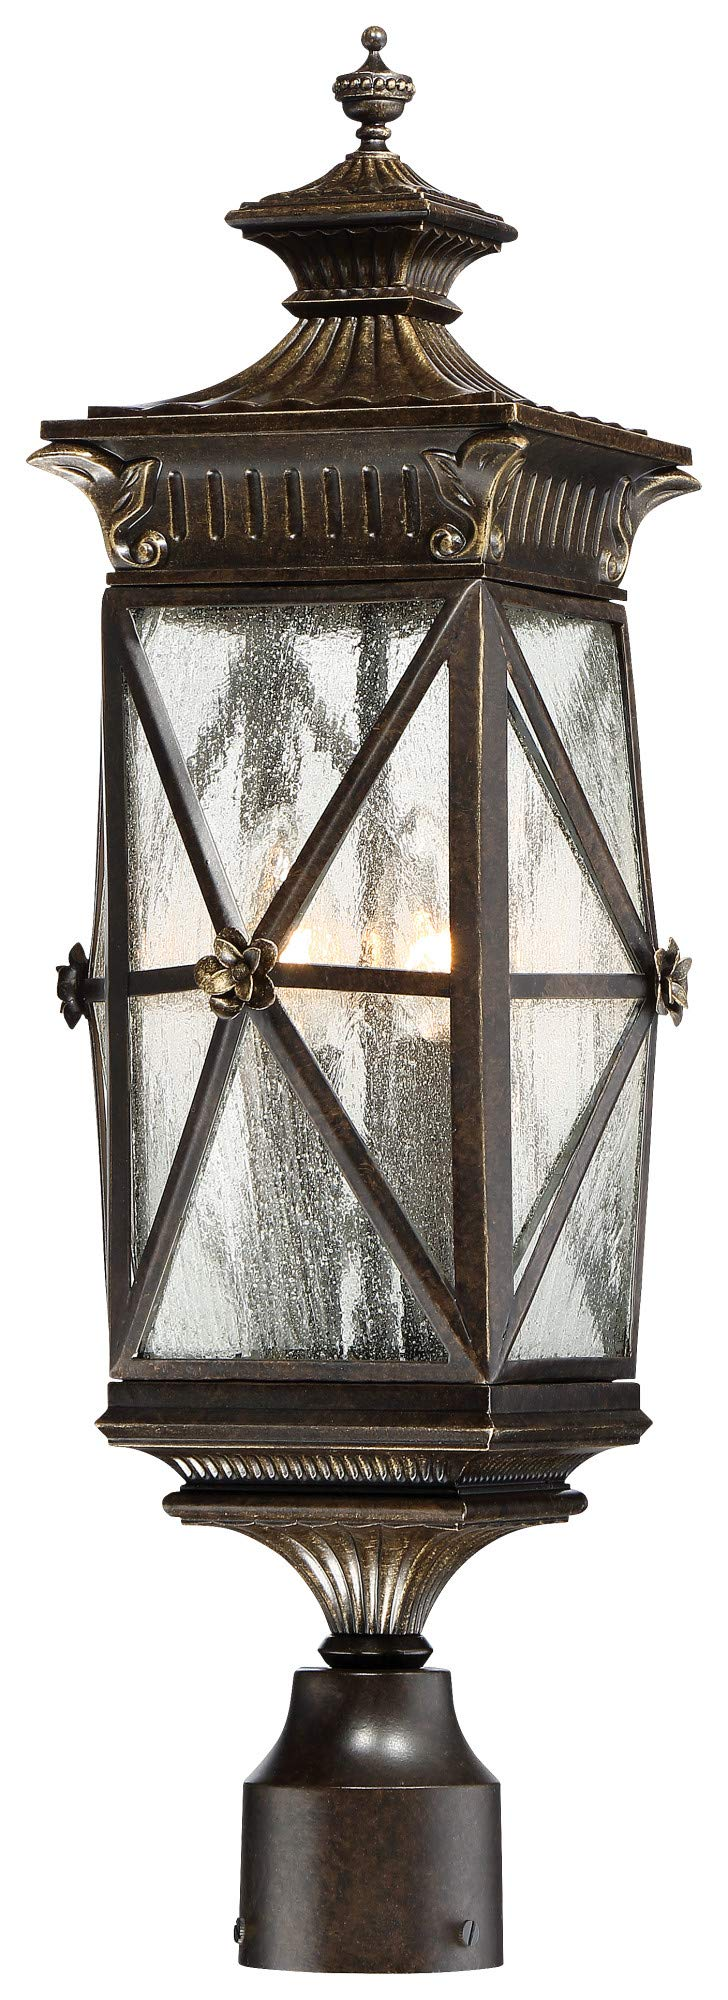 Minka Lavery Minka, 8.75 inches 9316-586 Transitional Four Rue Vieille Collection in Bronze/Darkfinish, 8.75 inchesFour Light Post Mount